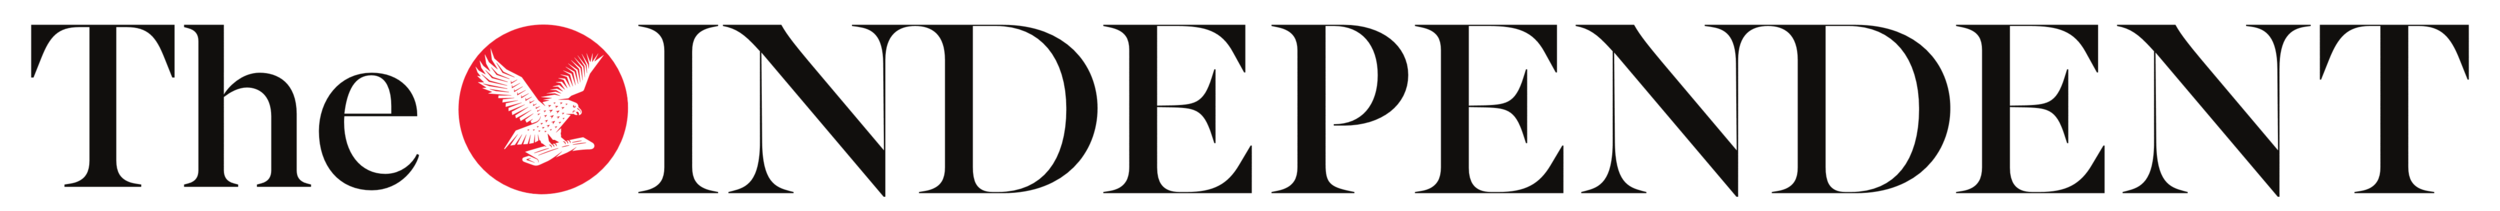 The_Independent_logo_white_bg.png